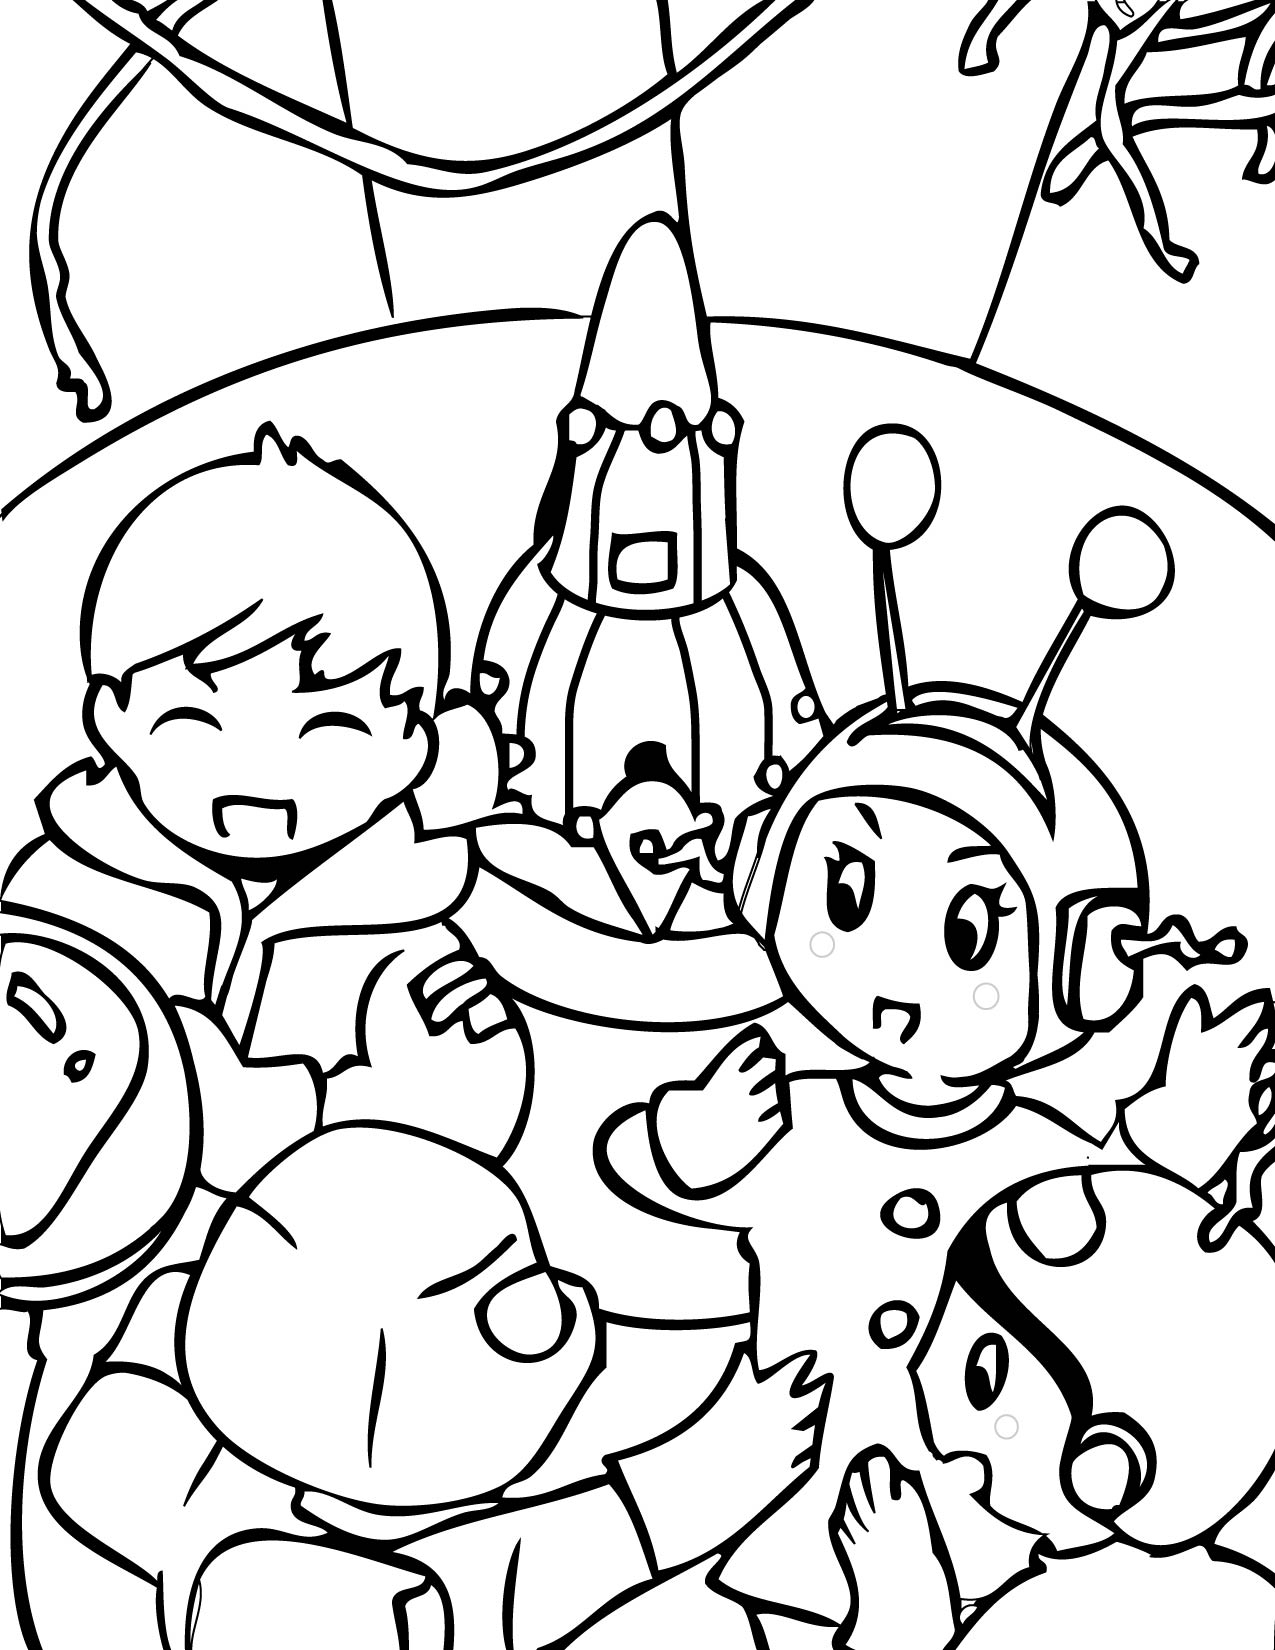 1275x1650 Outer Space Coloring Page Handipoints